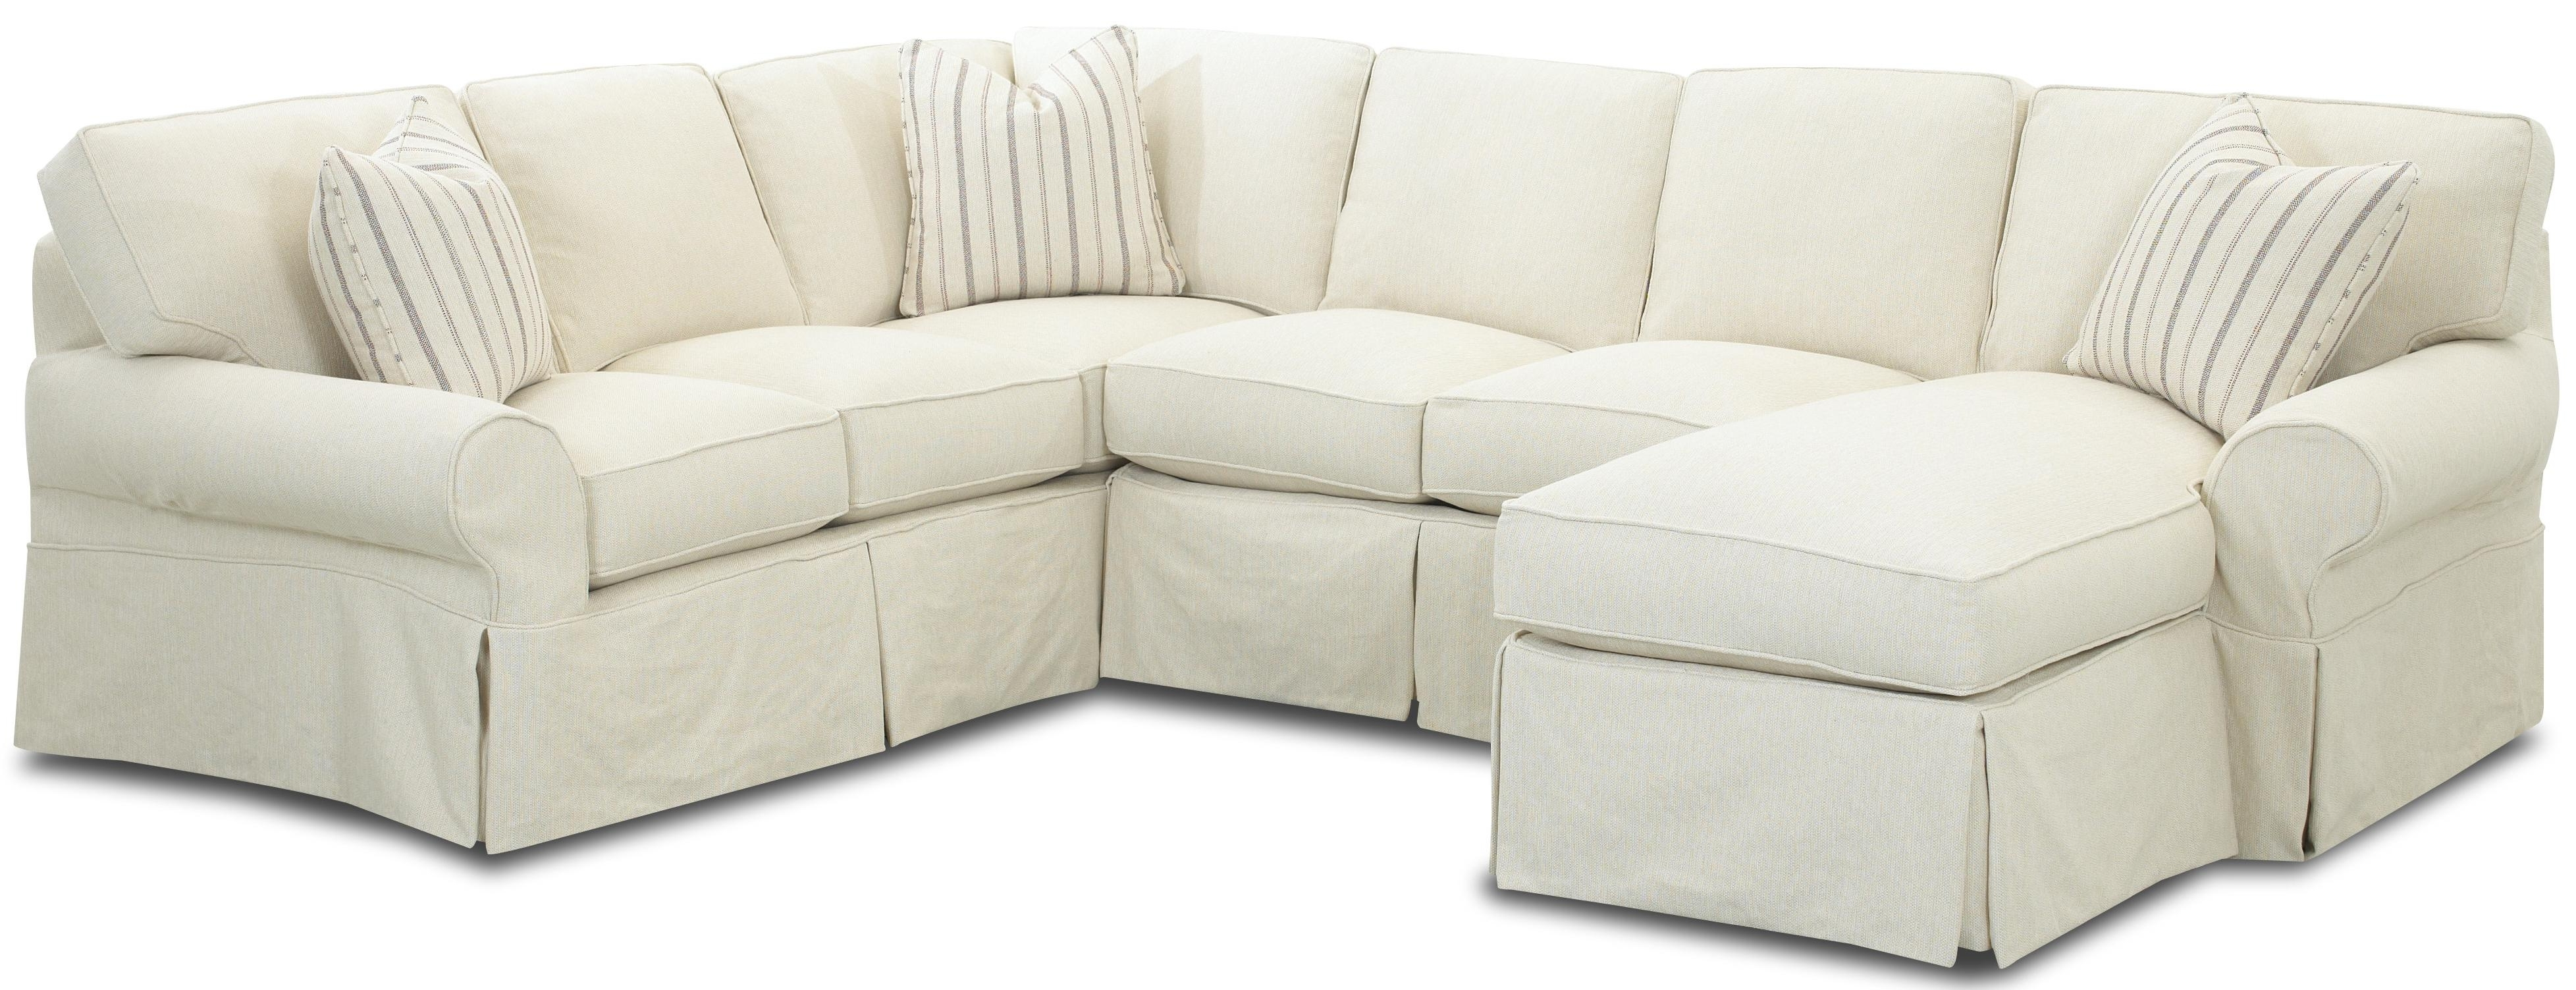 Sectional Sofa Design: Slipcovered Sectional Sofa Chaise Reviews Within Most Popular Slipcovered Sofas With Chaise (View 9 of 15)